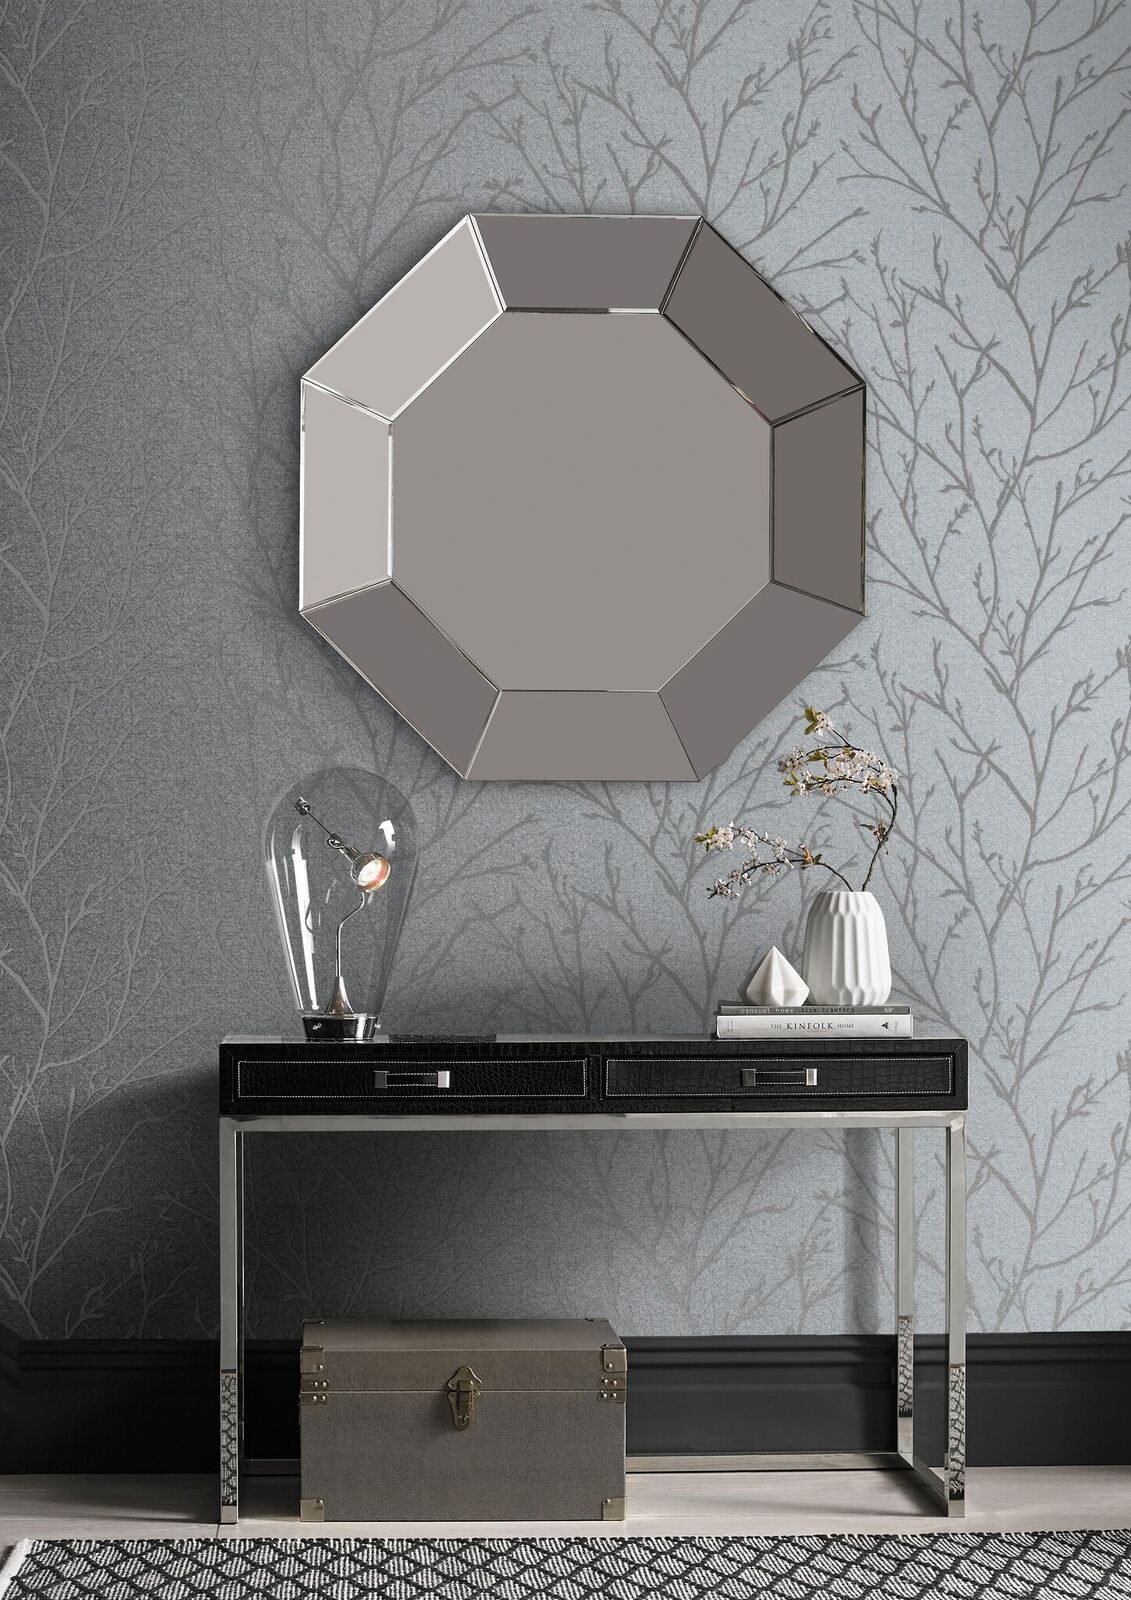 new designs from graham brown architects and artisans. Black Bedroom Furniture Sets. Home Design Ideas